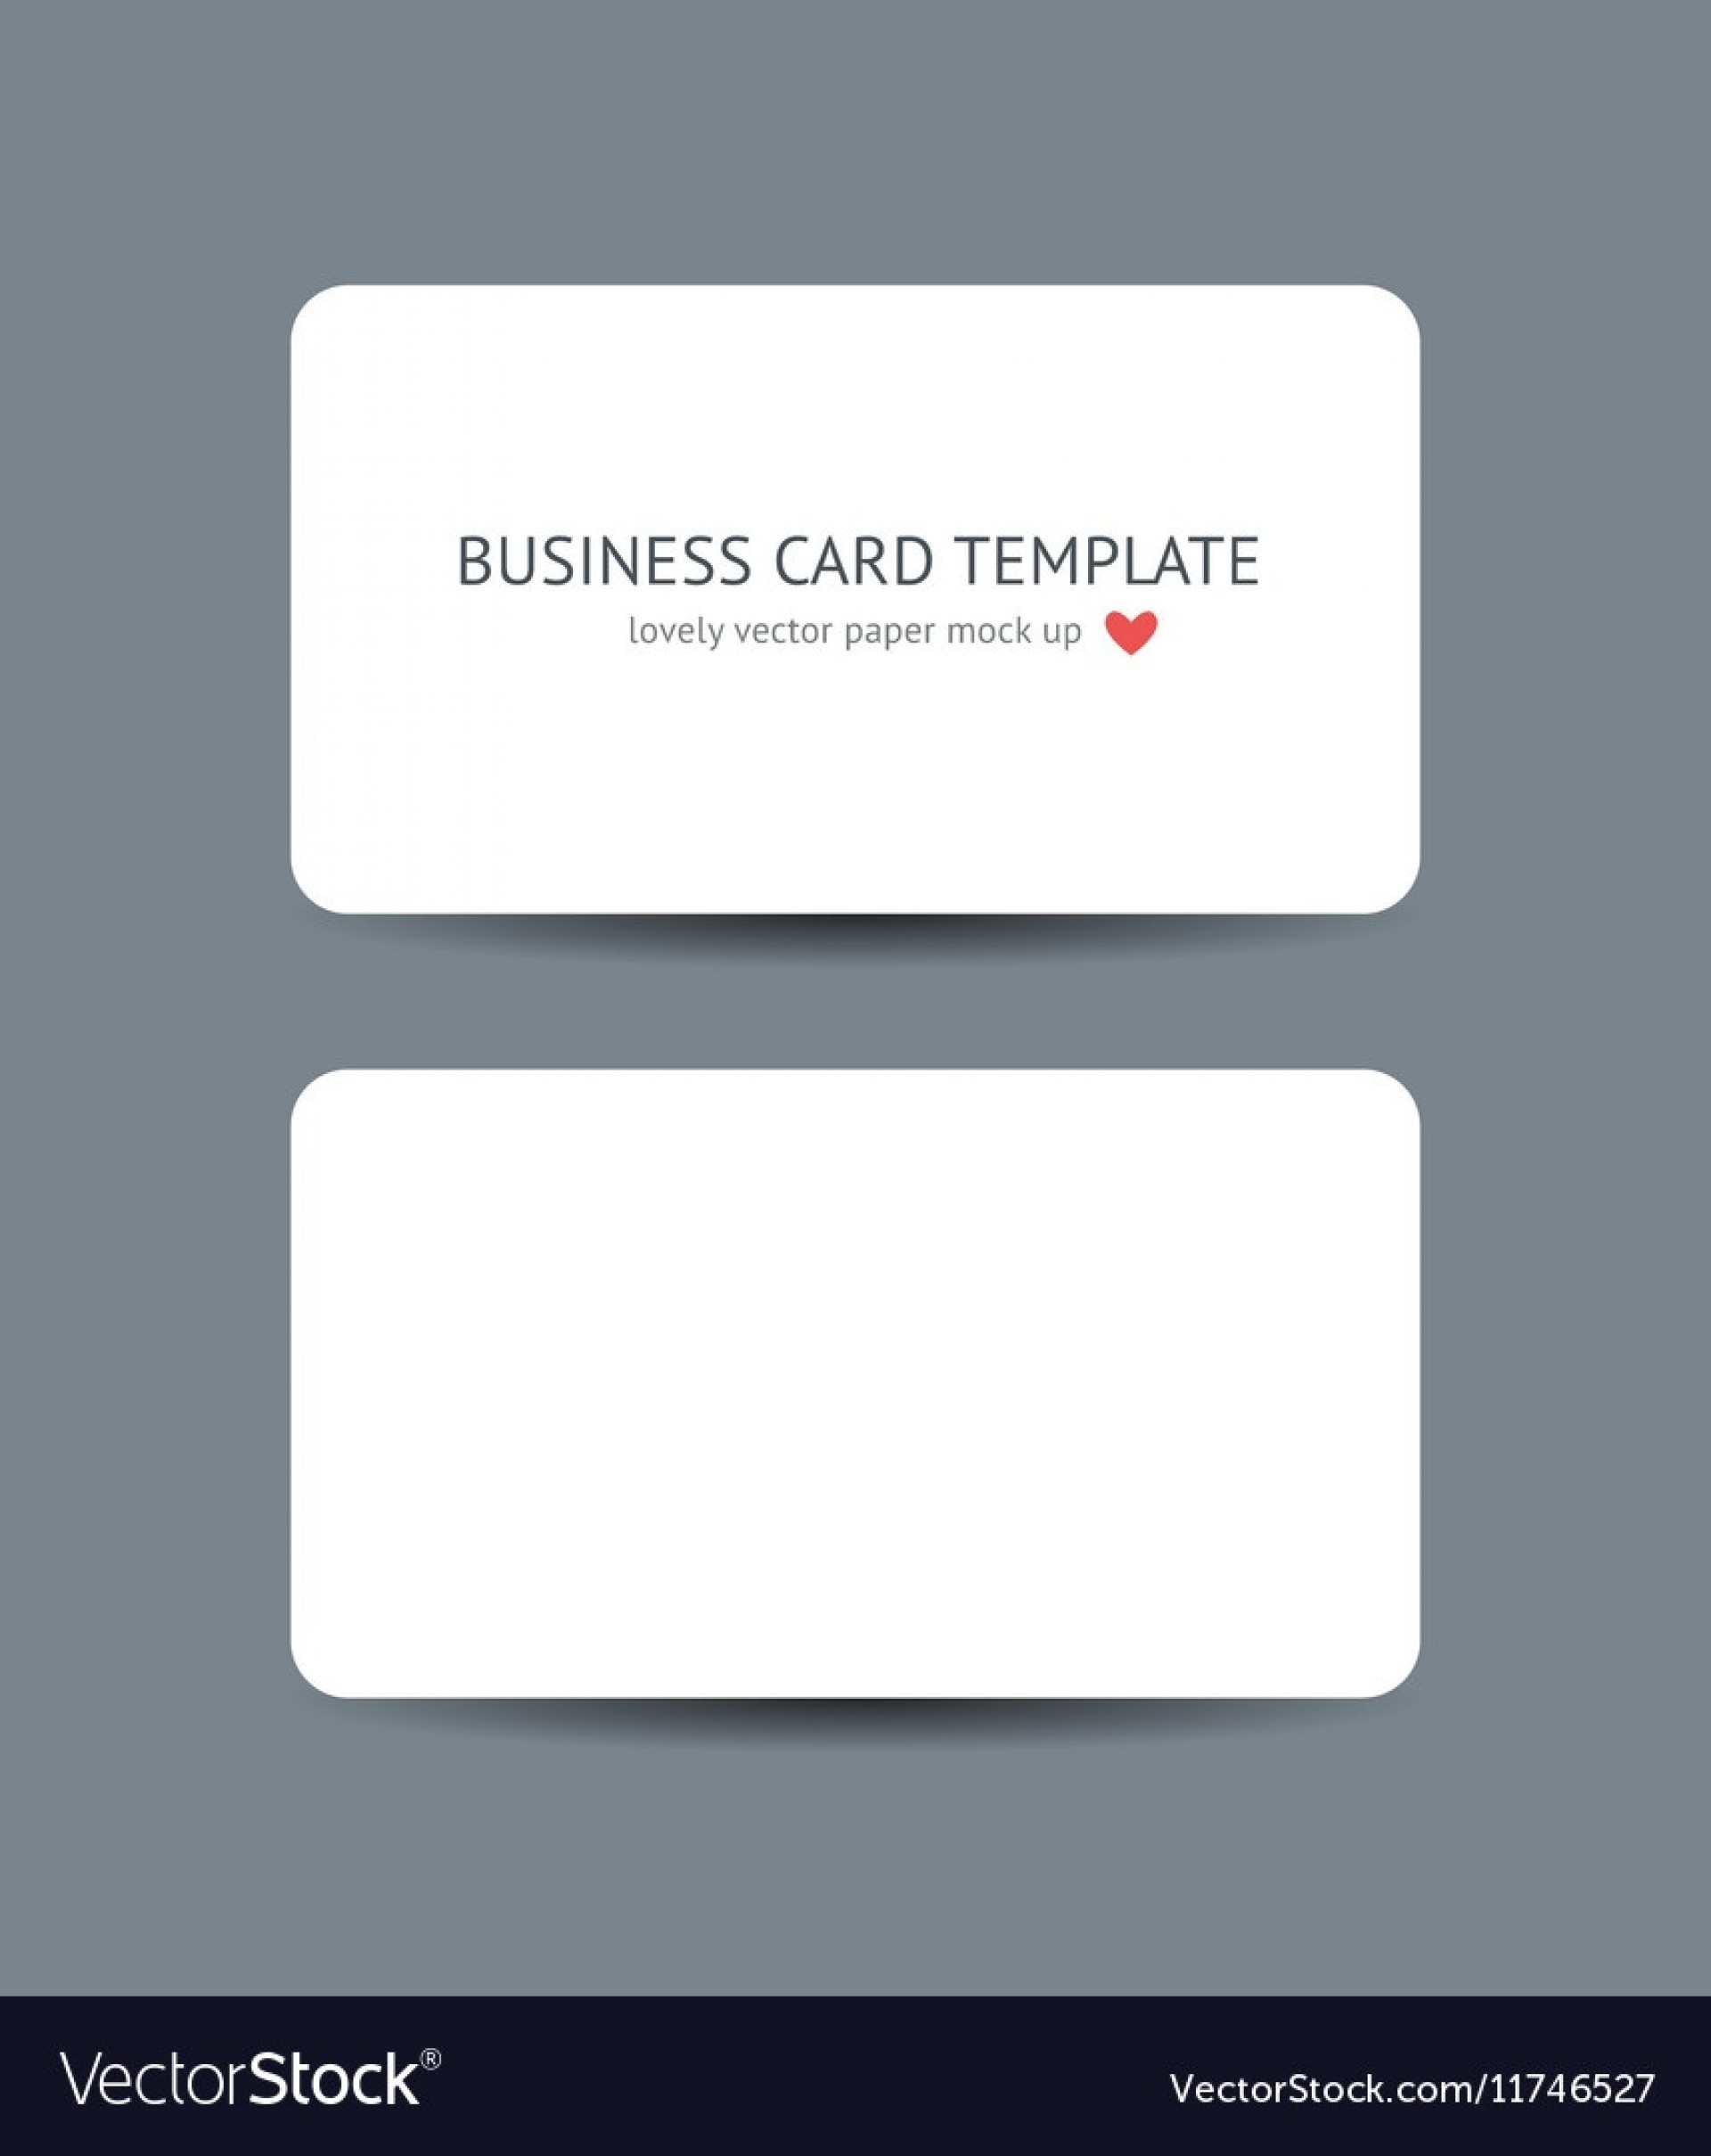 005 Awful Busines Card Blank Template Design  Download Free1920